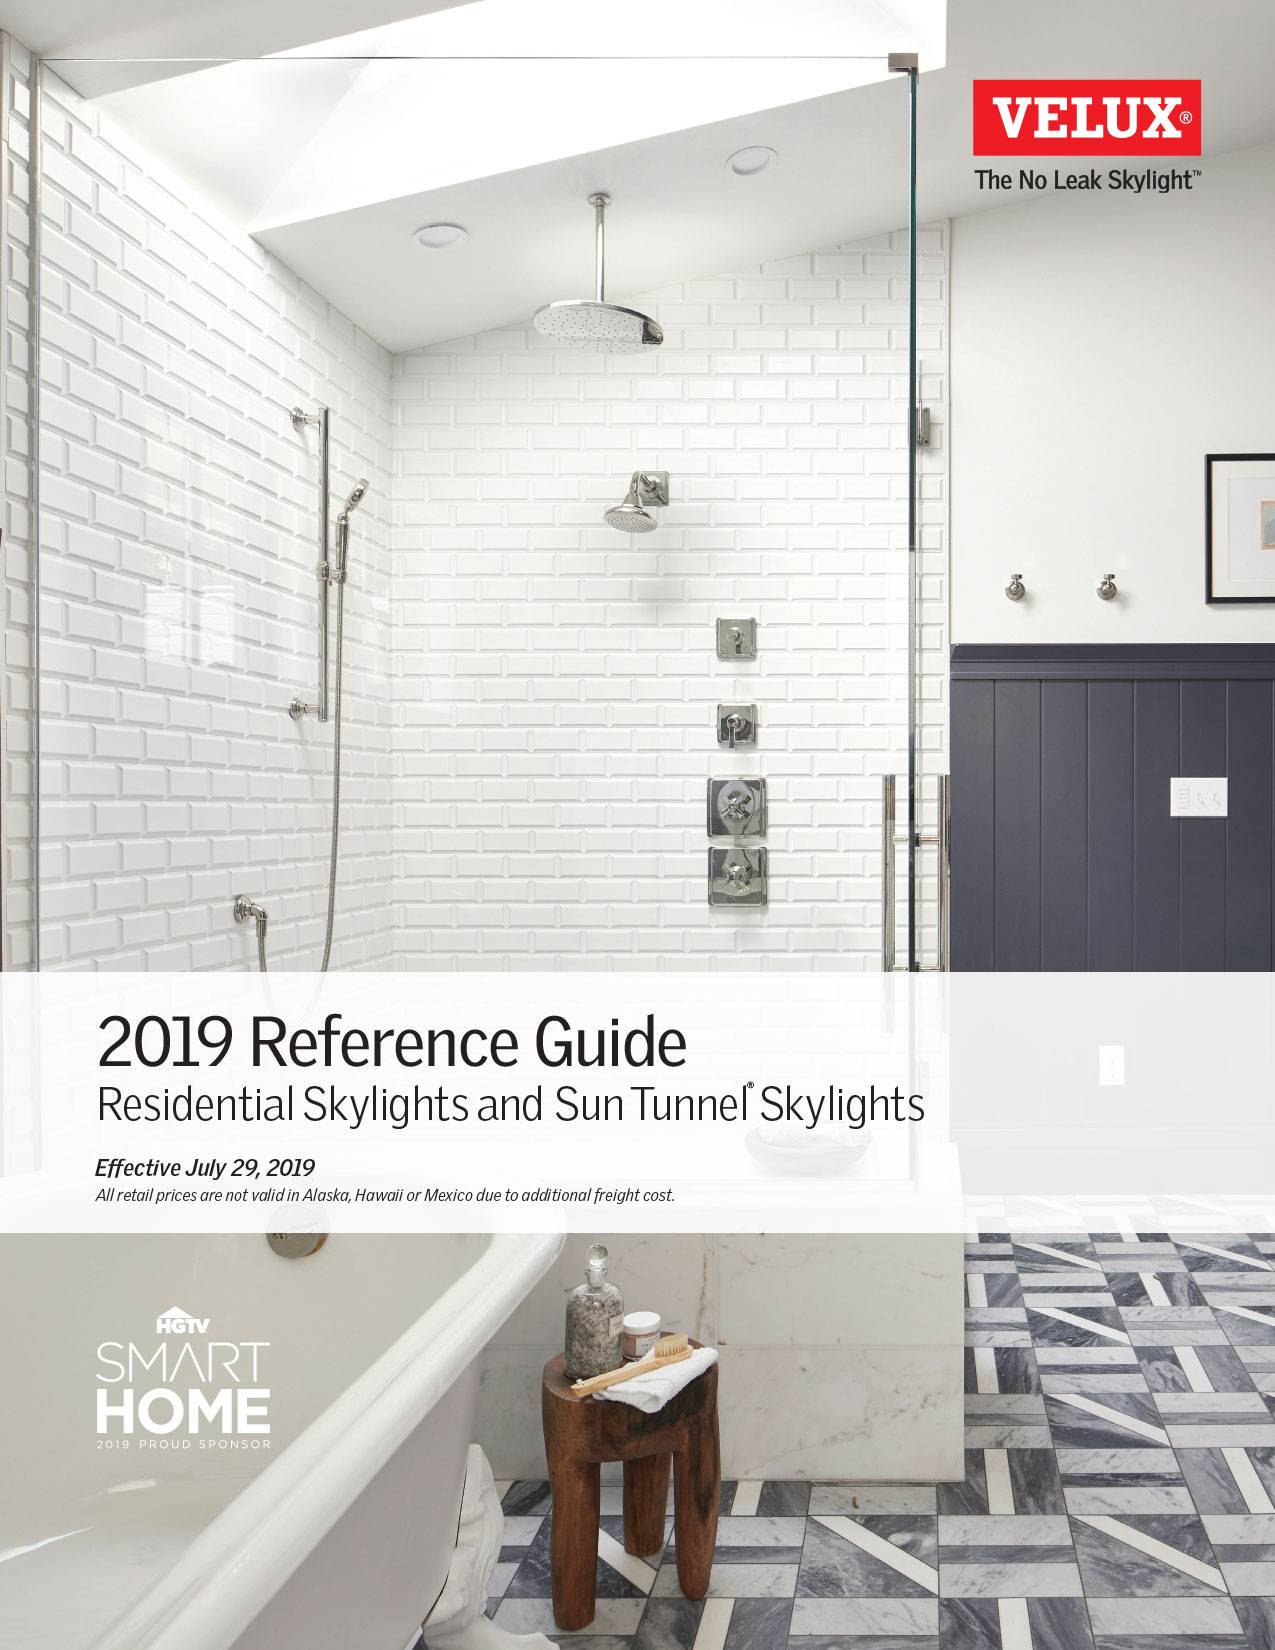 referenceguide2019